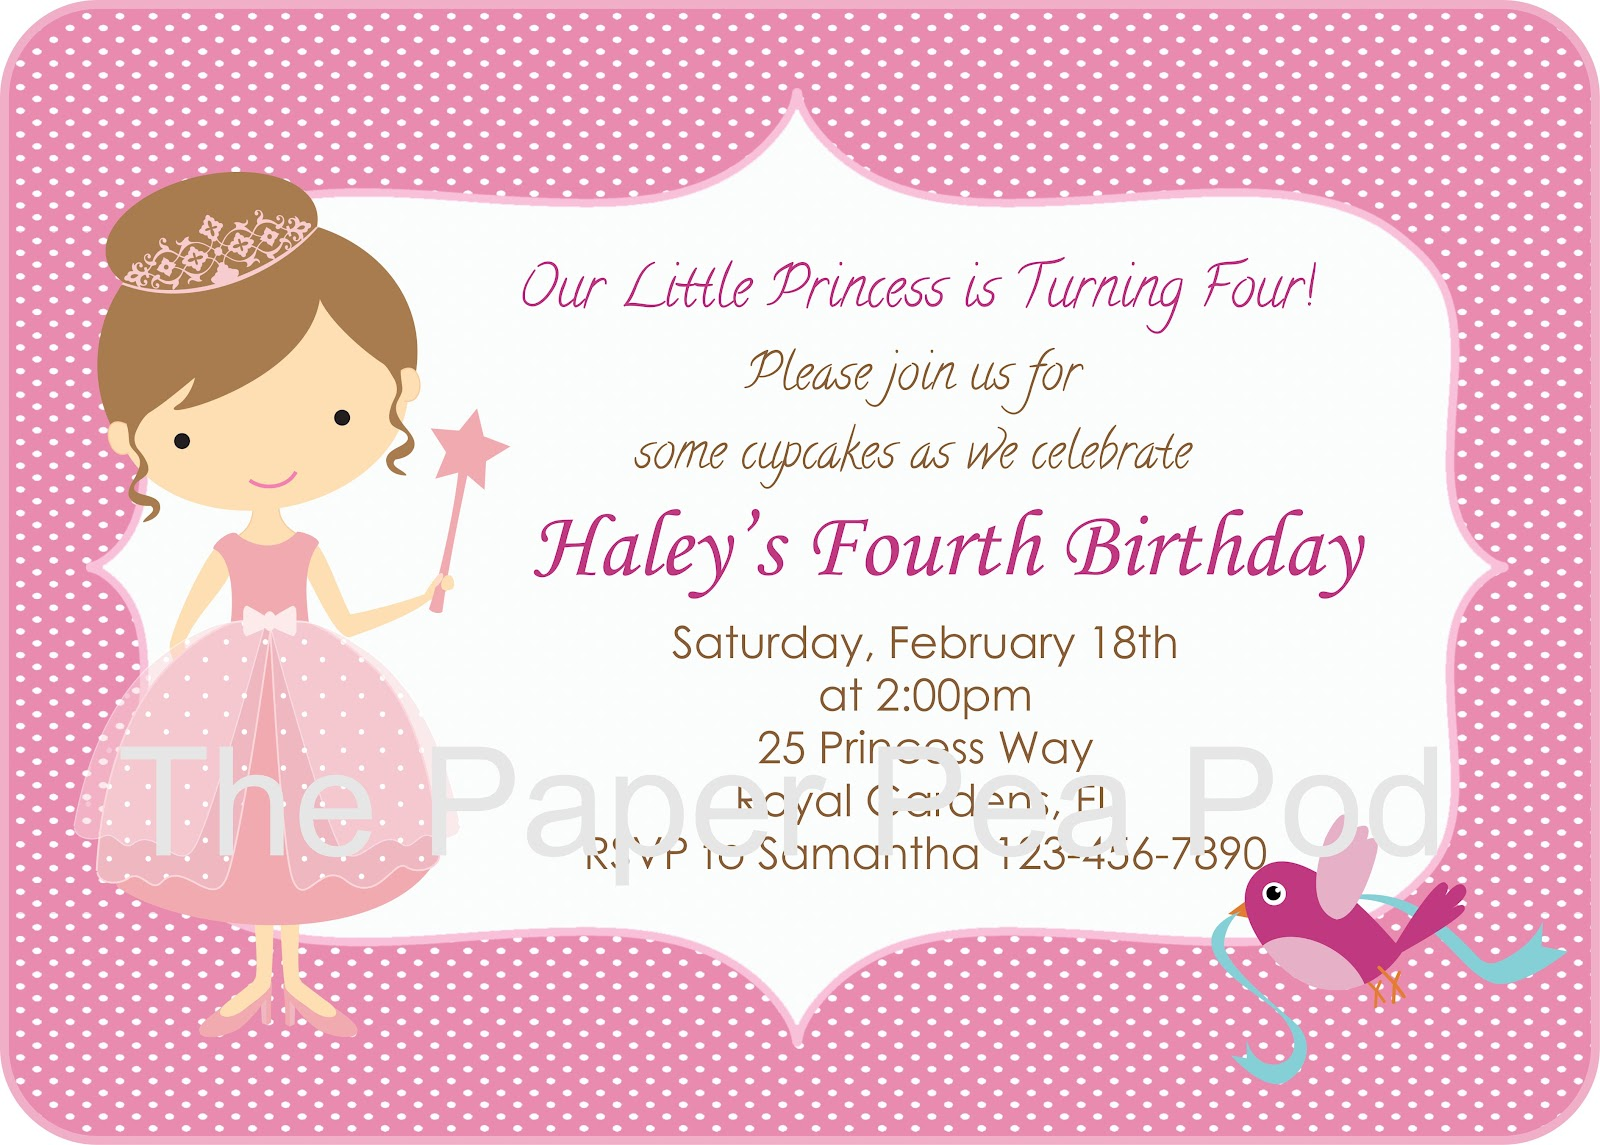 th birthday ideas online princess birthday invitation pink princess birthday invitation